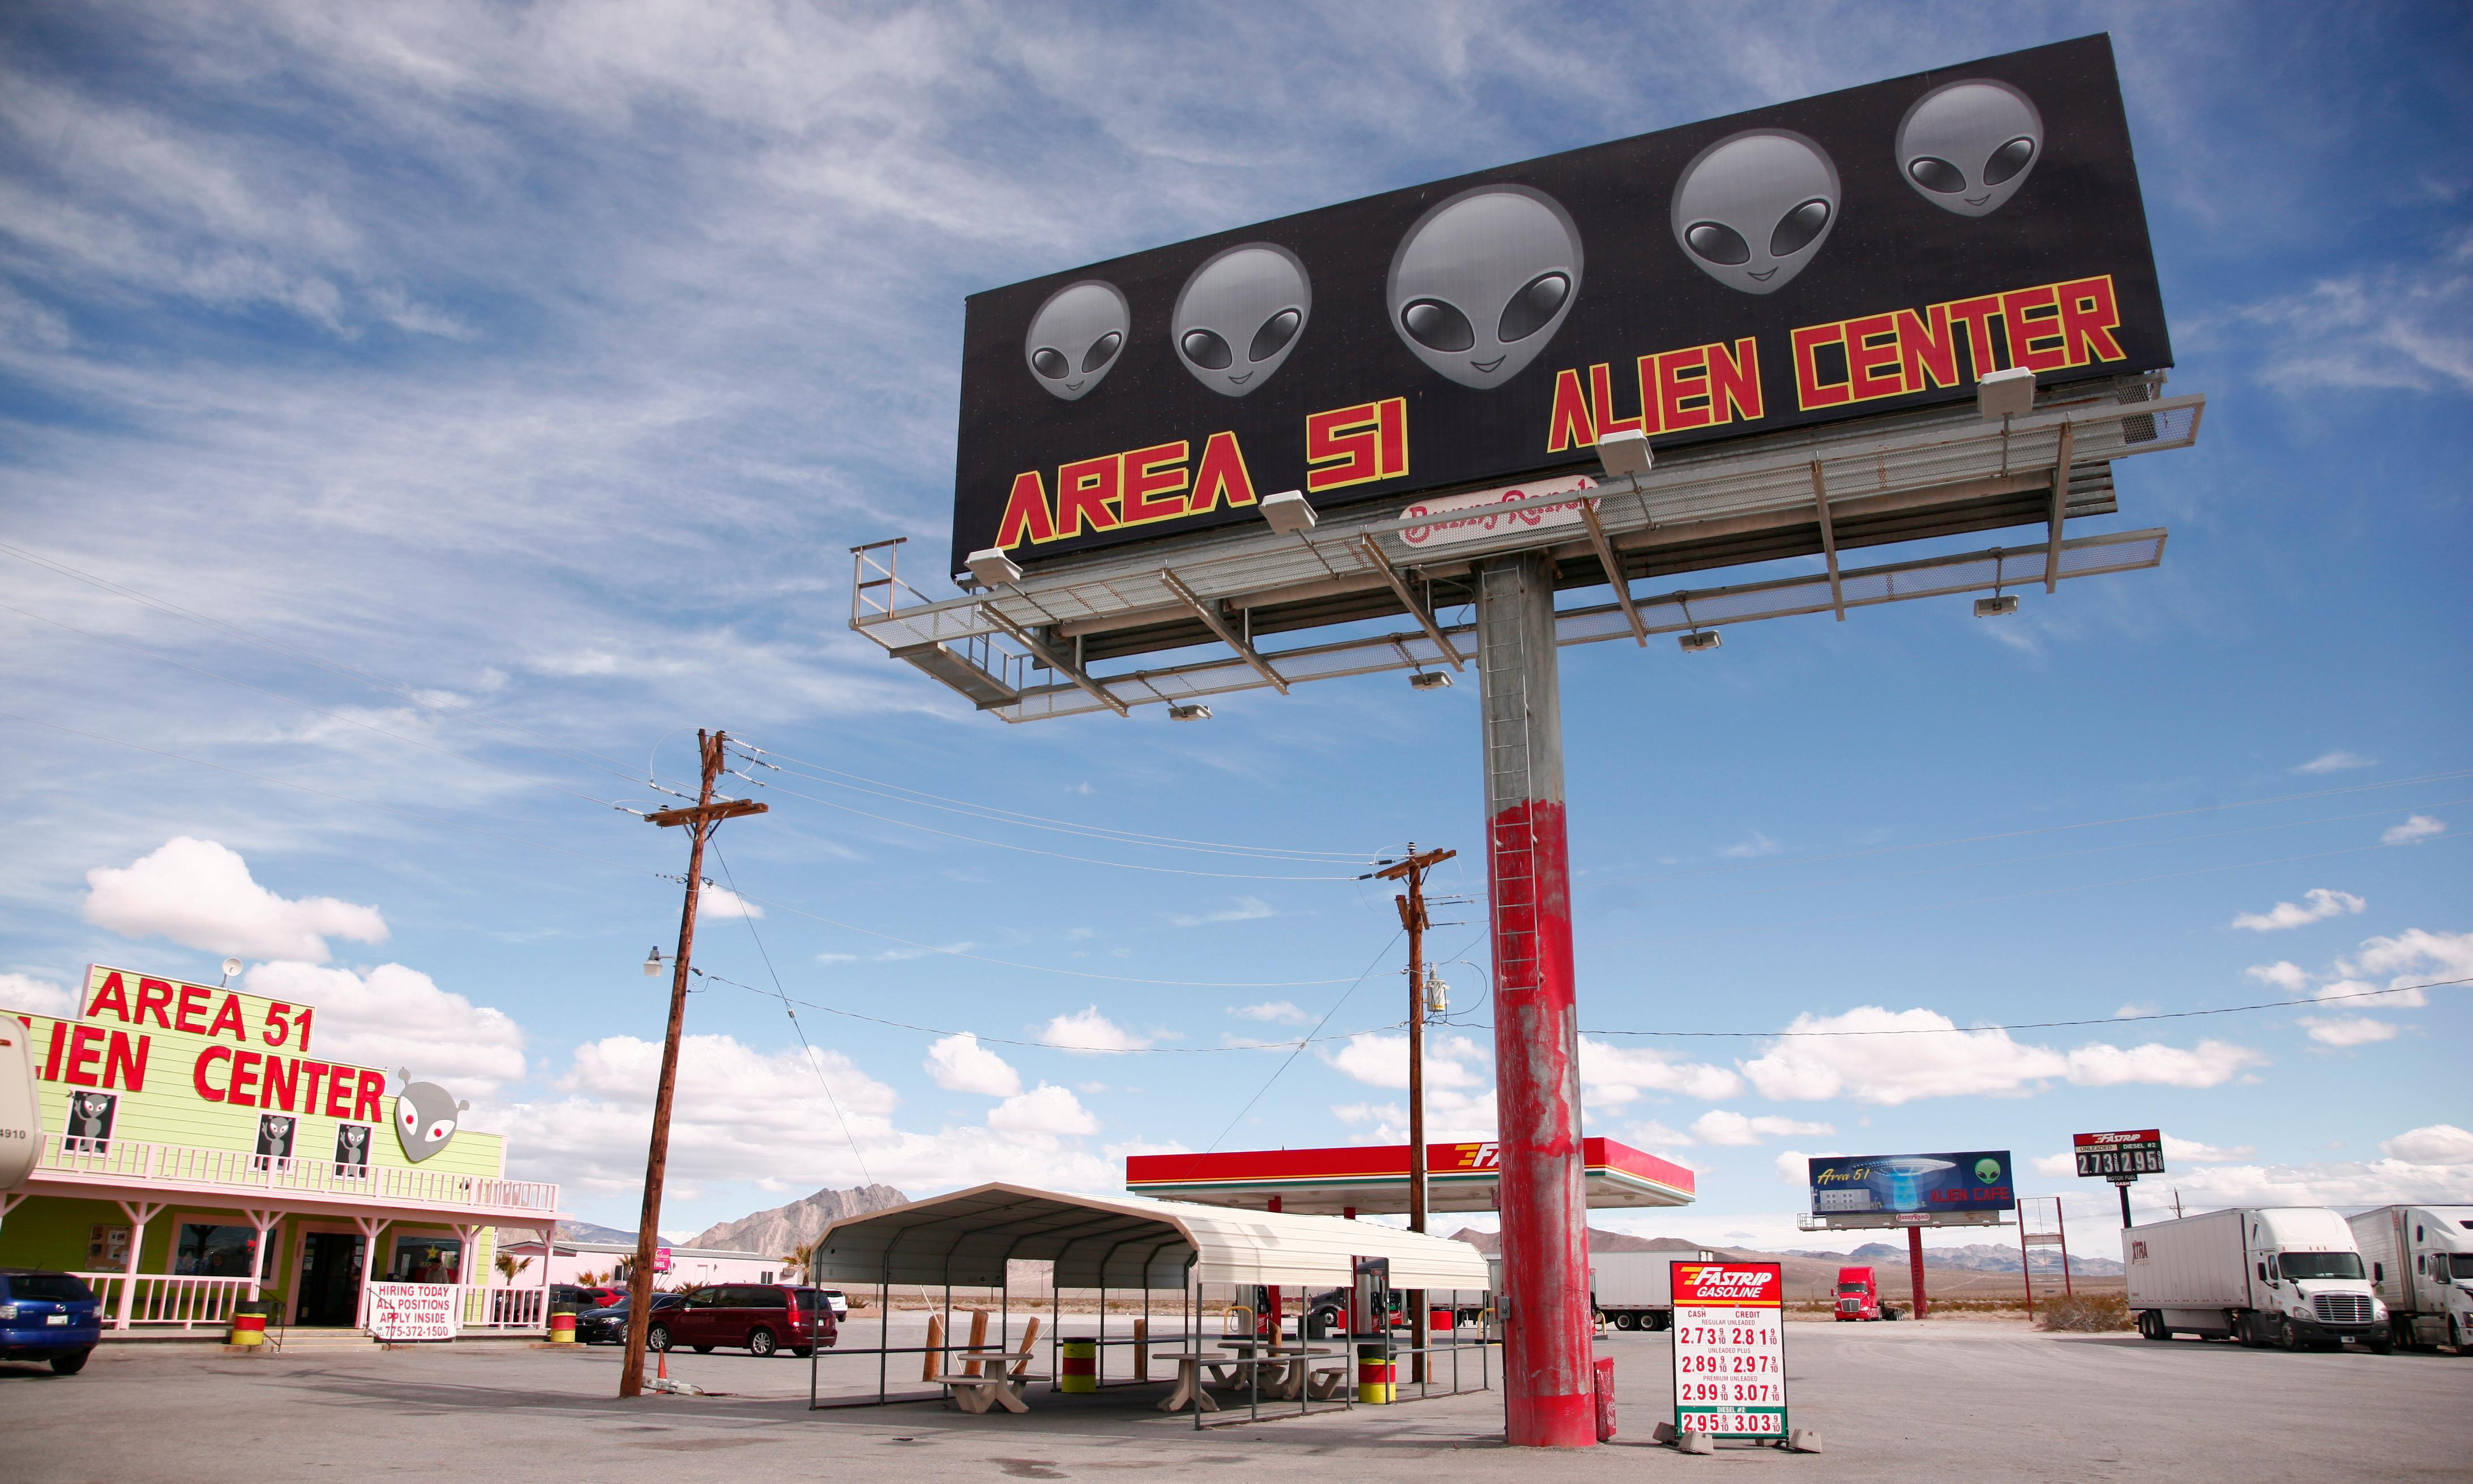 Why the joke Facebook page calling for people to storm Area 51 went viral